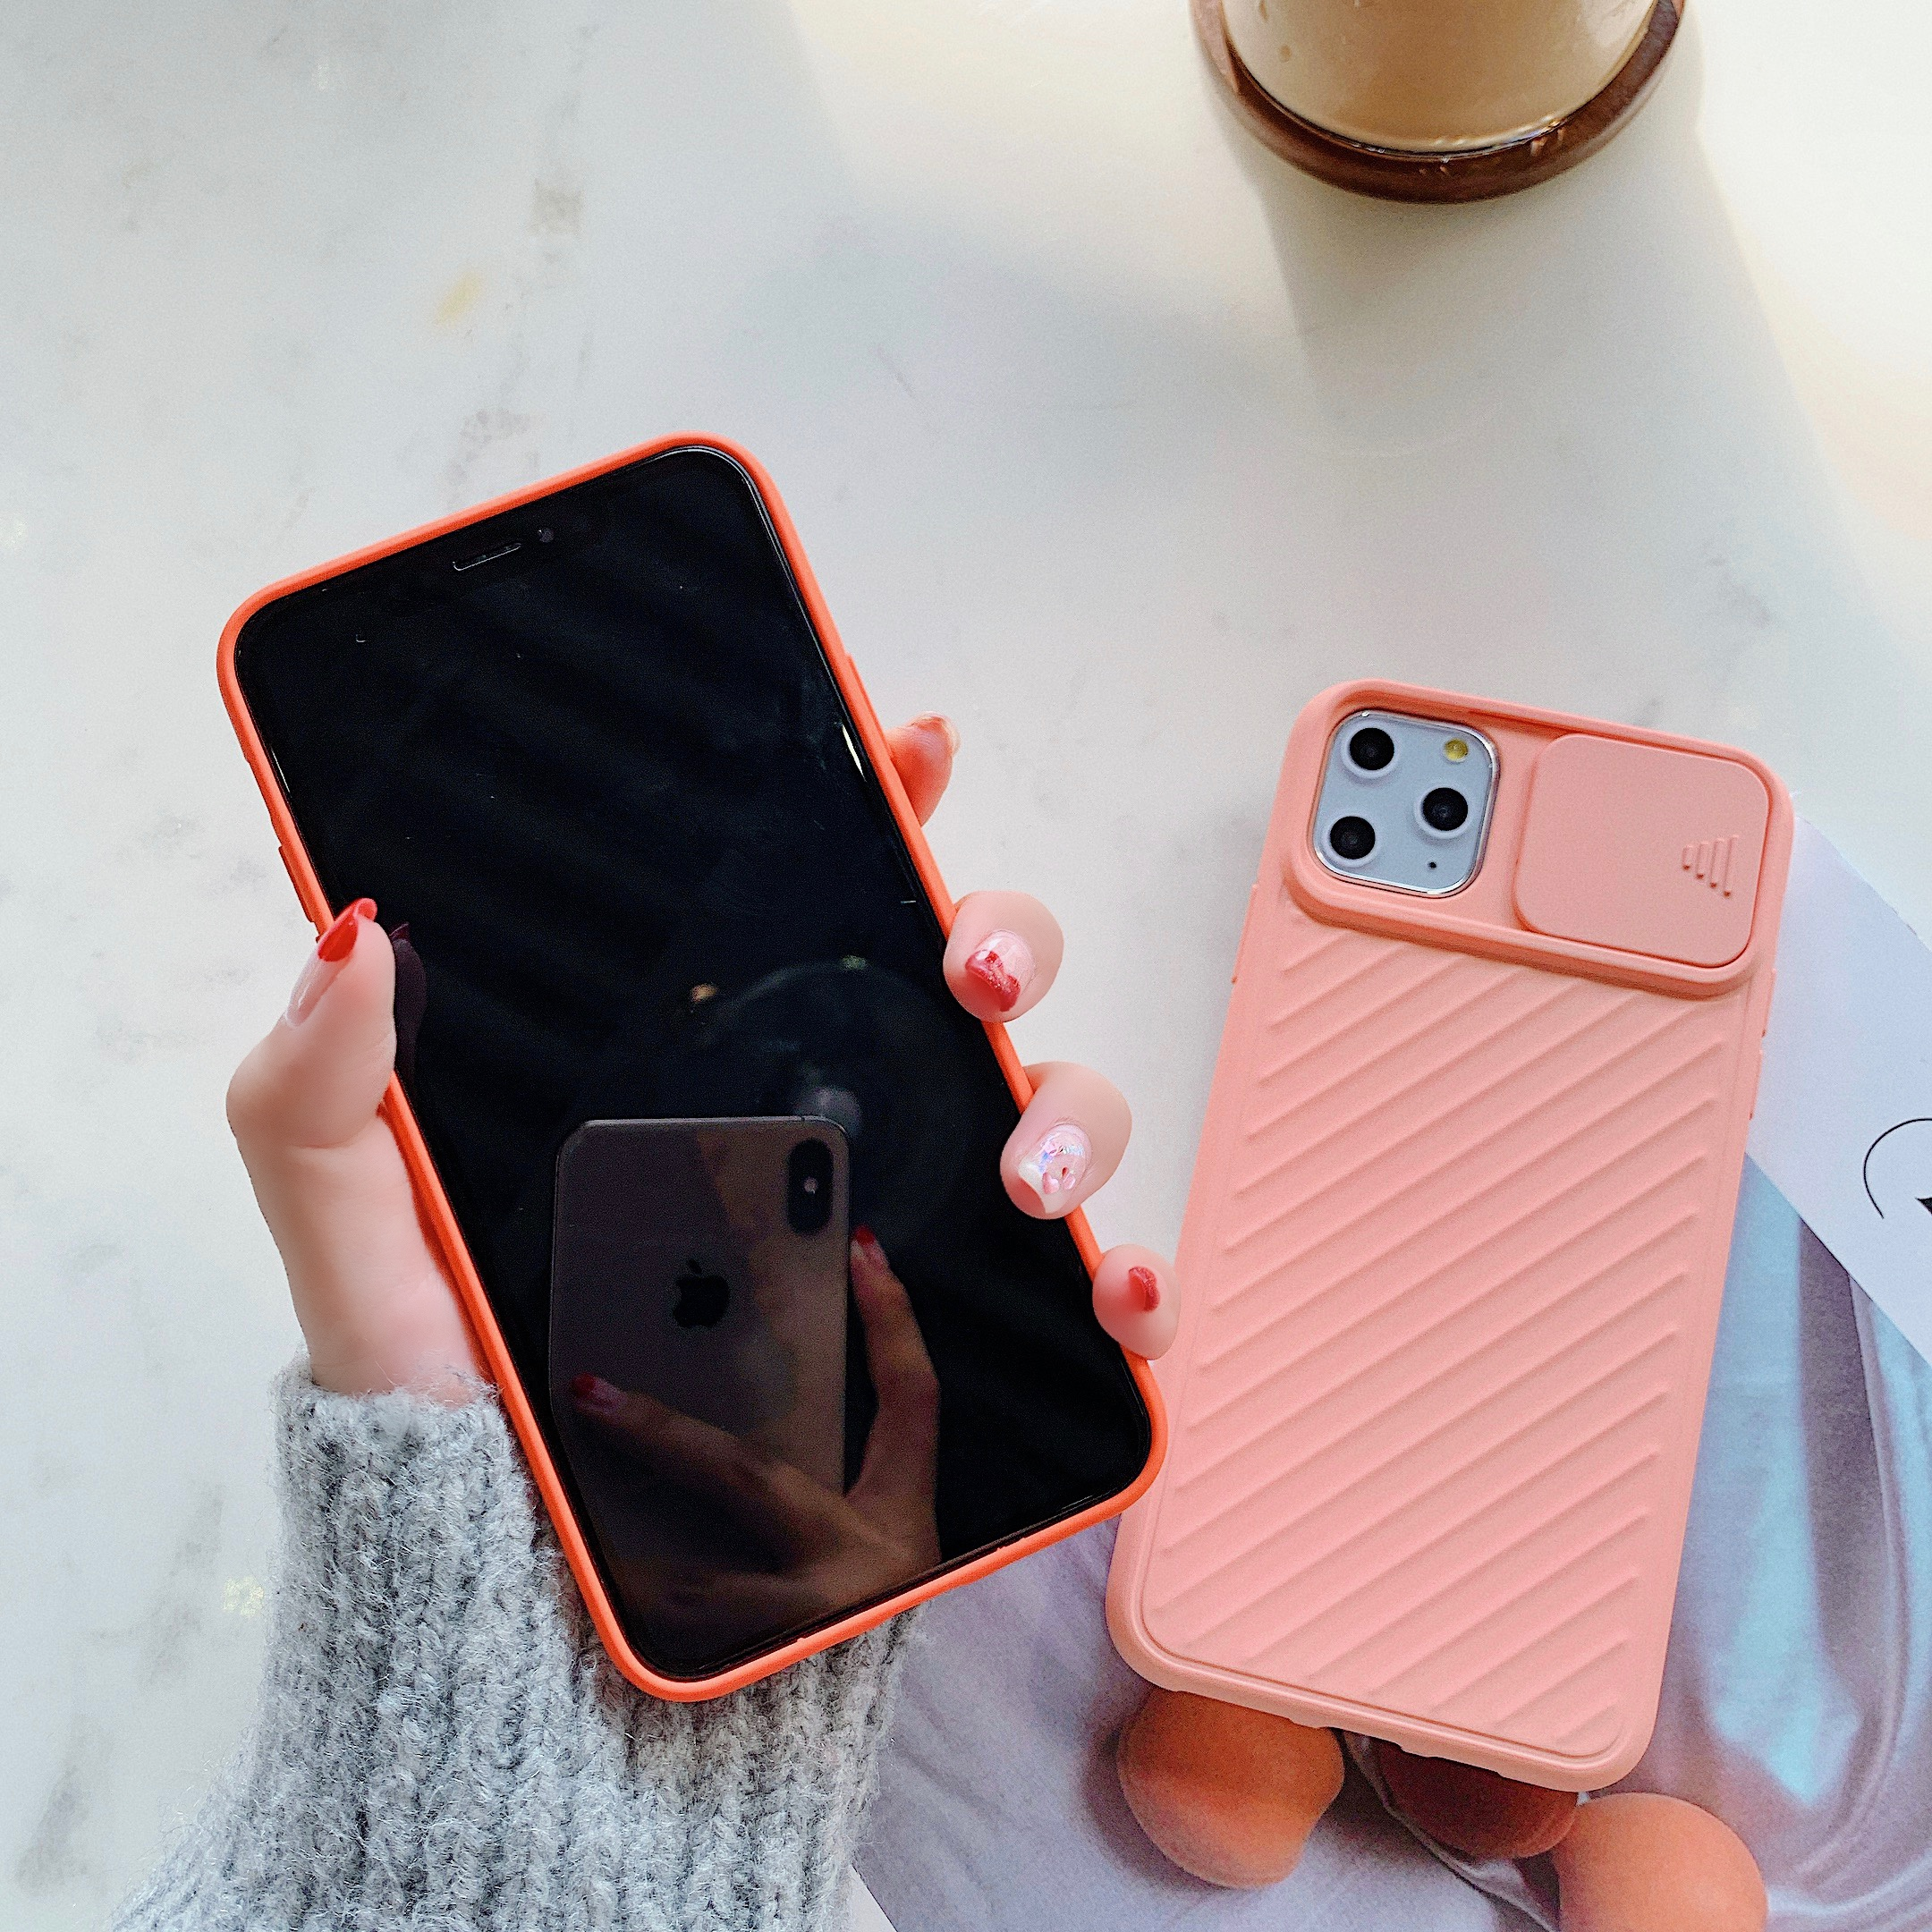 Camera Lens Protection Phone Case on For iPhone 11 Pro Max 8 7 6 6s Plus Xr XsMax X Xs Color Candy Soft Silicone Back Cover Gift 3